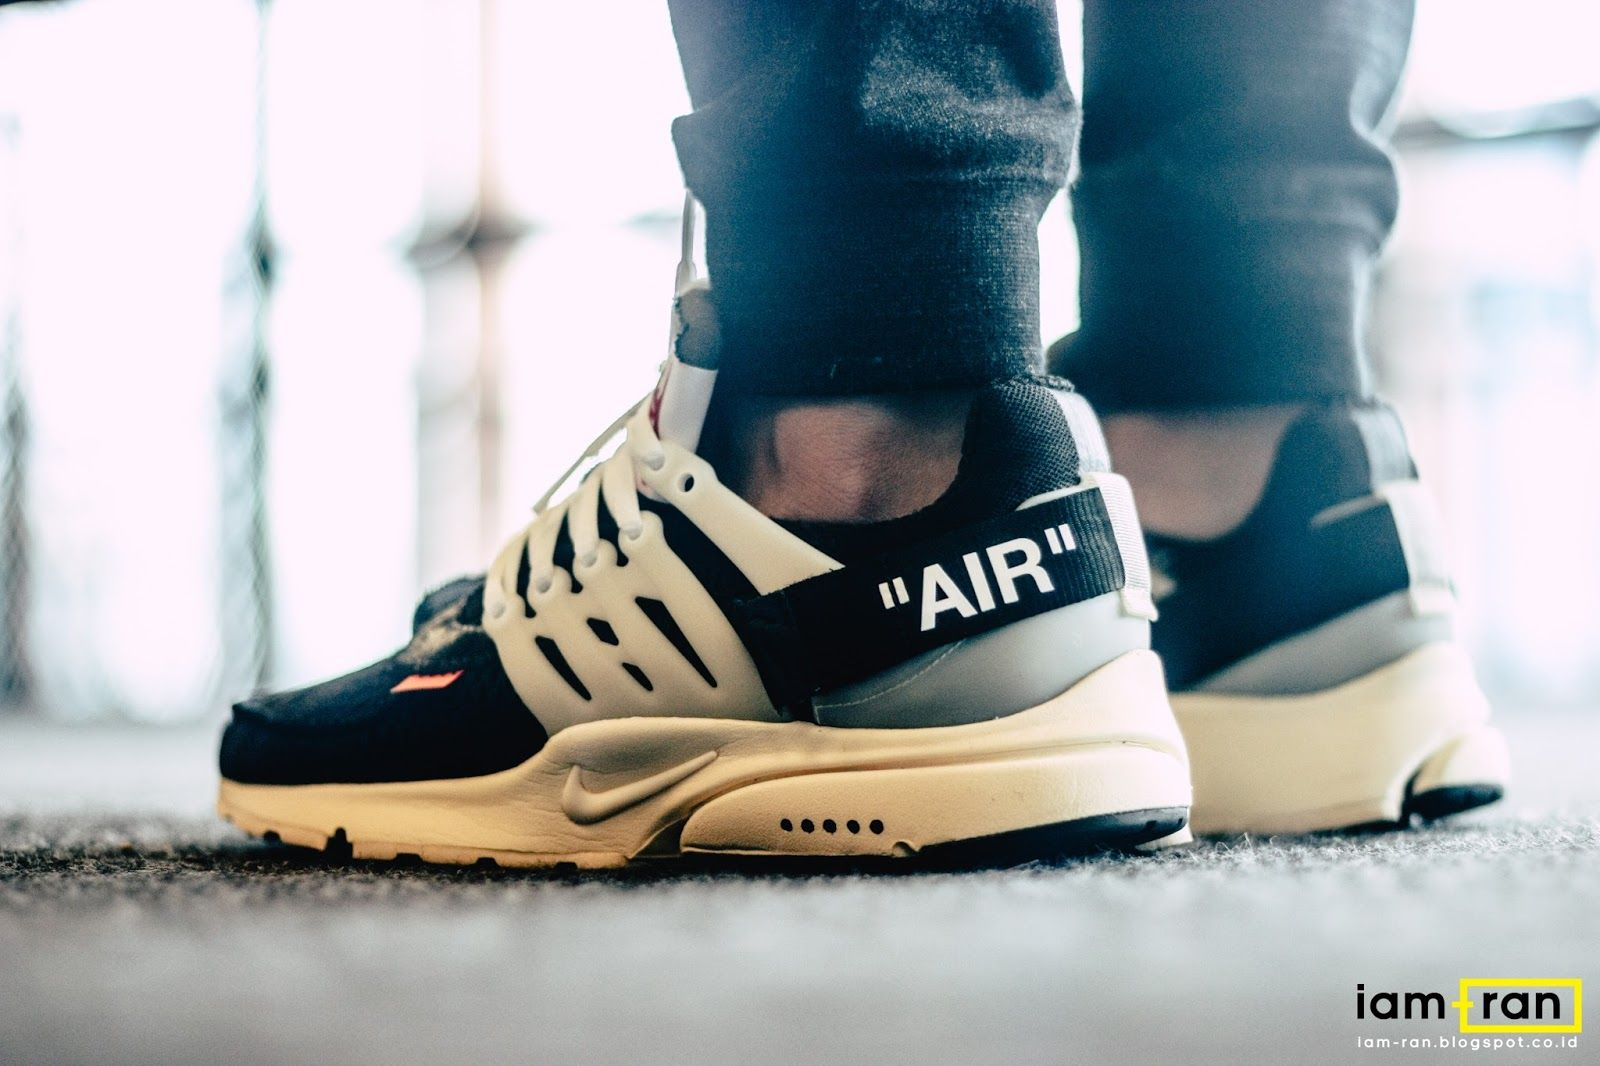 b5a5a2444 Image result for off white presto on feet' | Shoes in 2019 ...